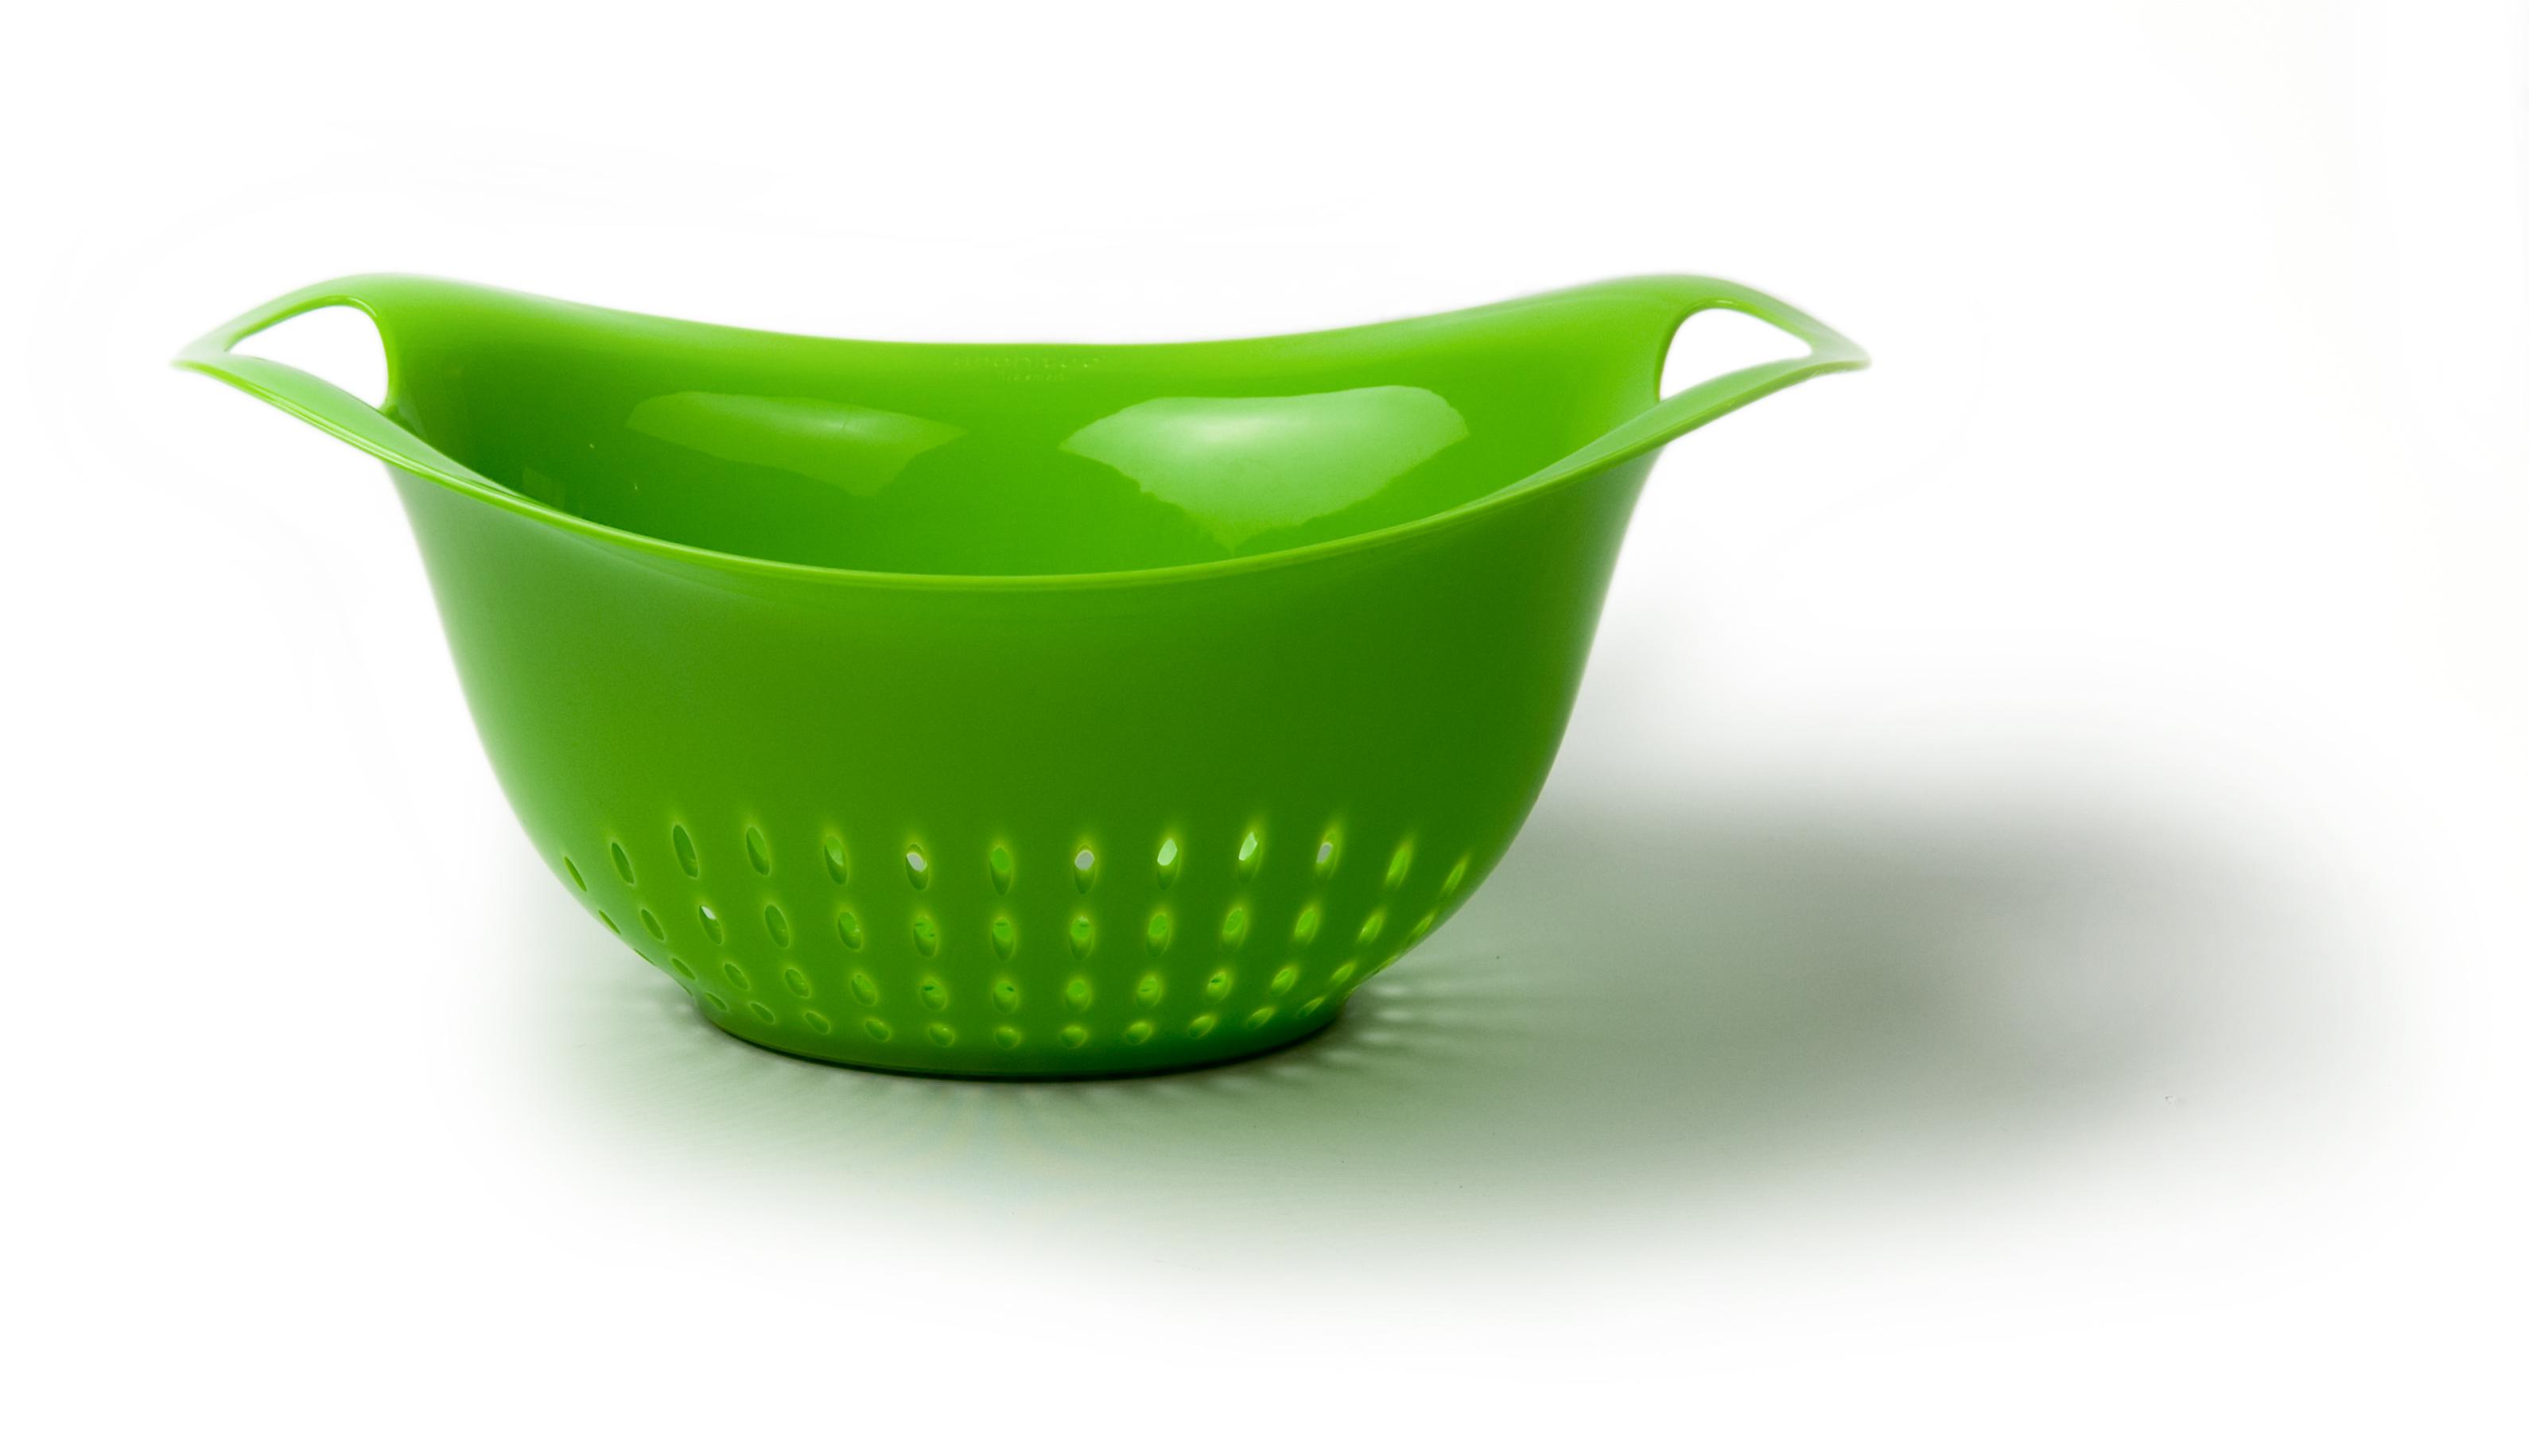 Architec Gripper Colander 4 Qt, Green by Architec